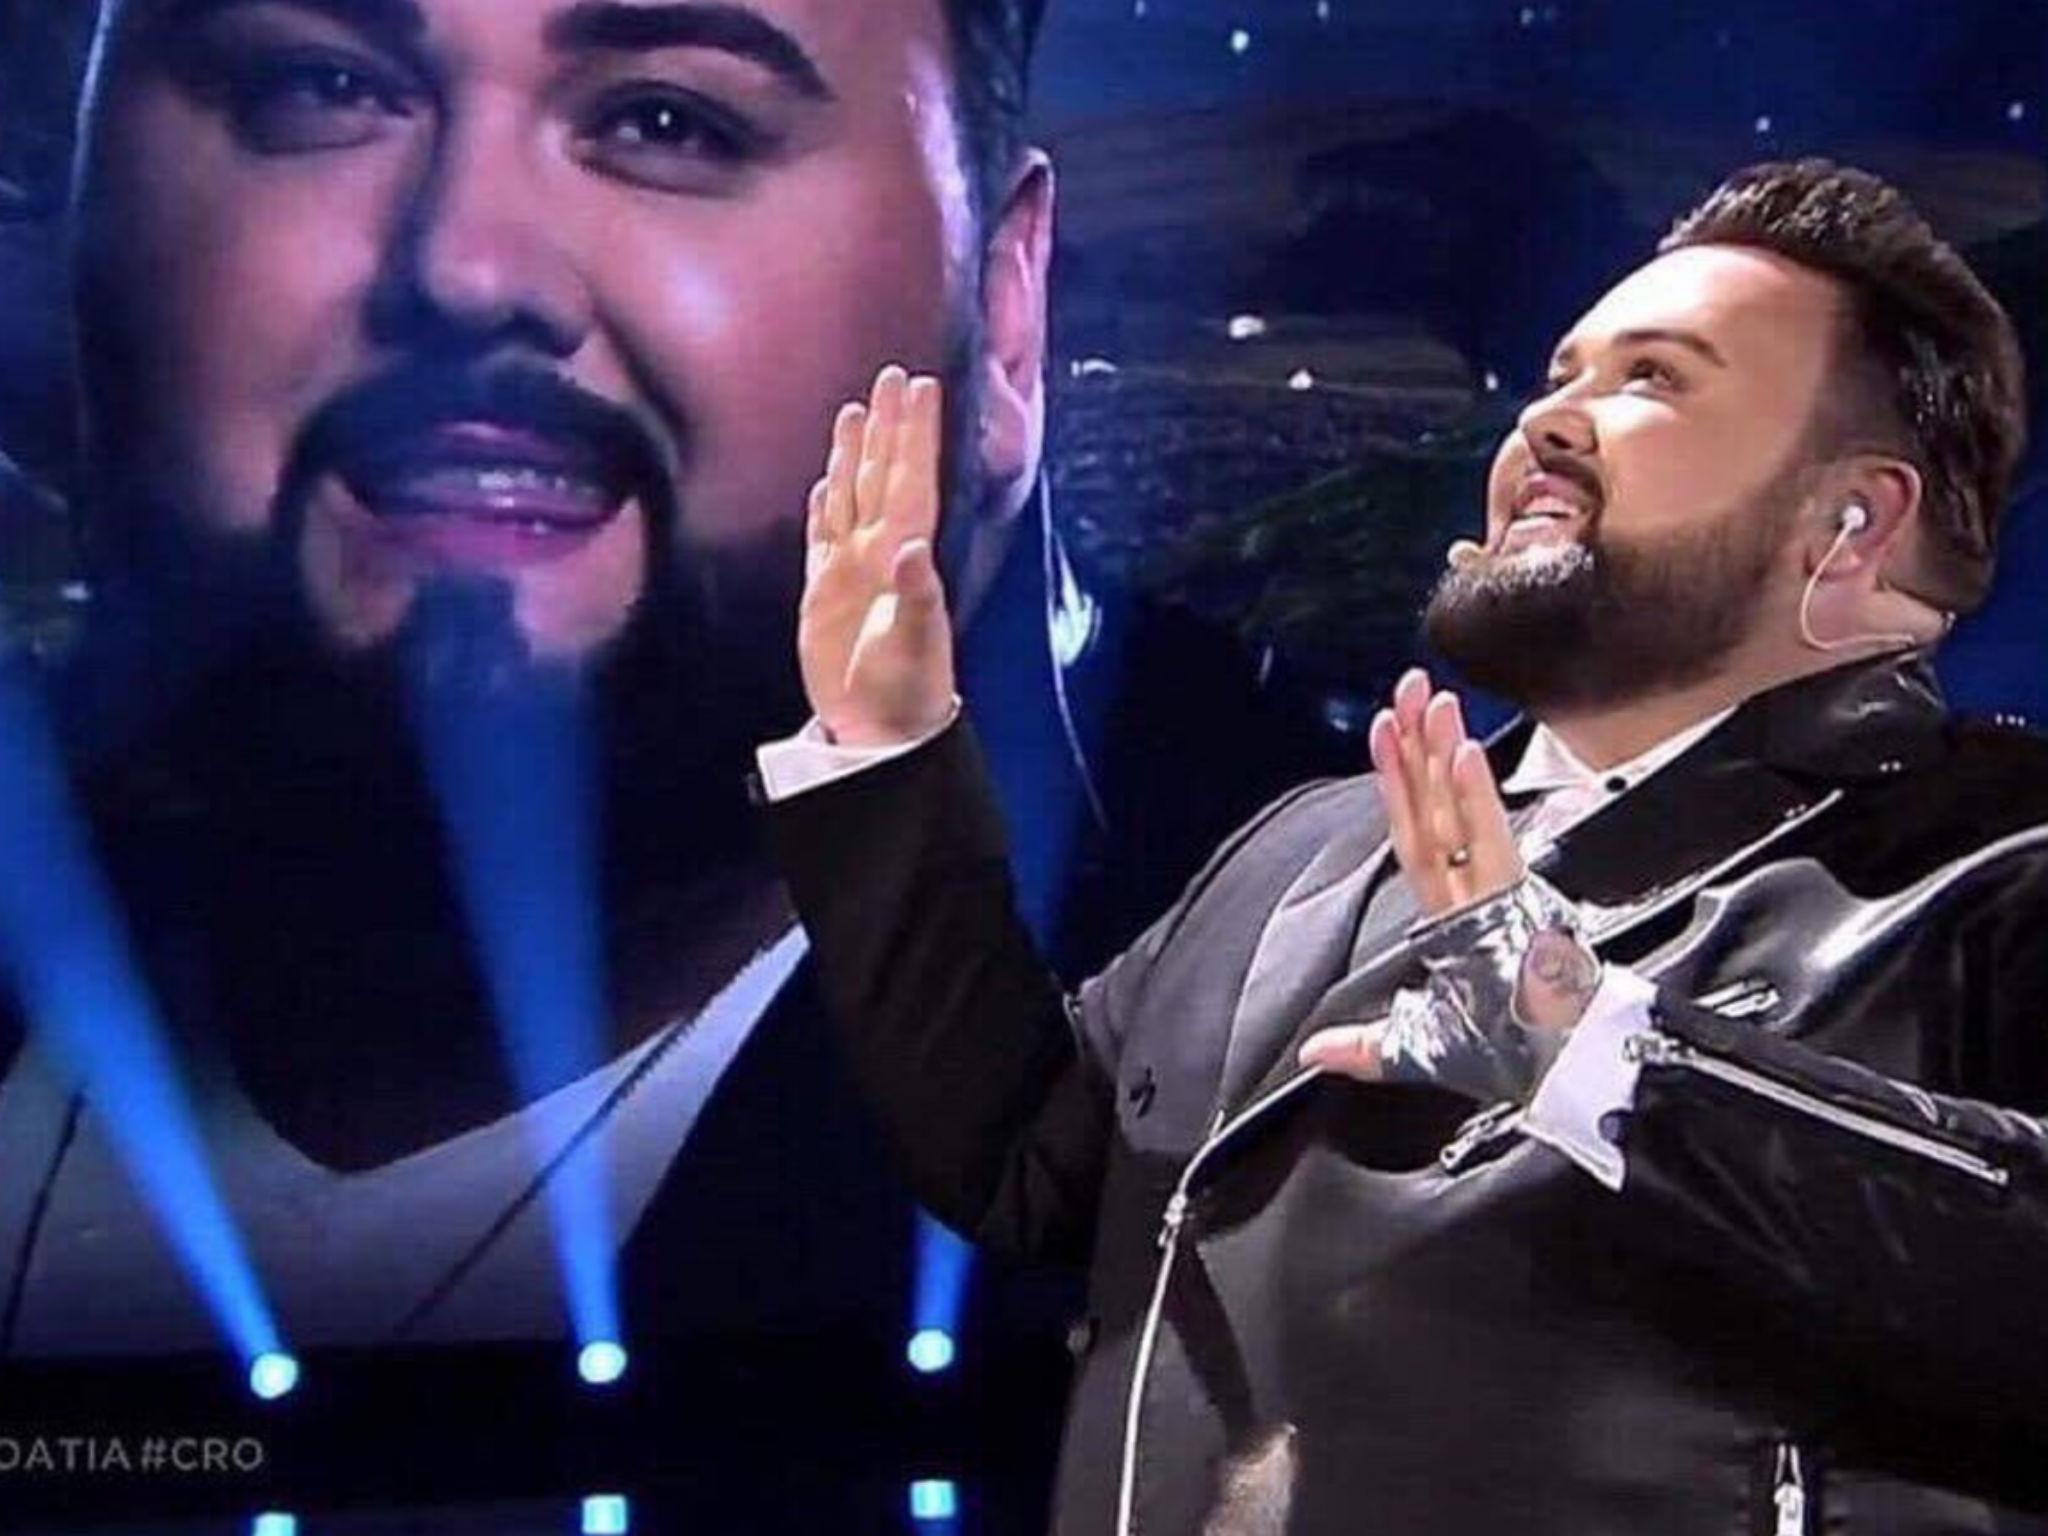 Eurovision 2017 croatias entry does a duet with himself and becomes an instant meme